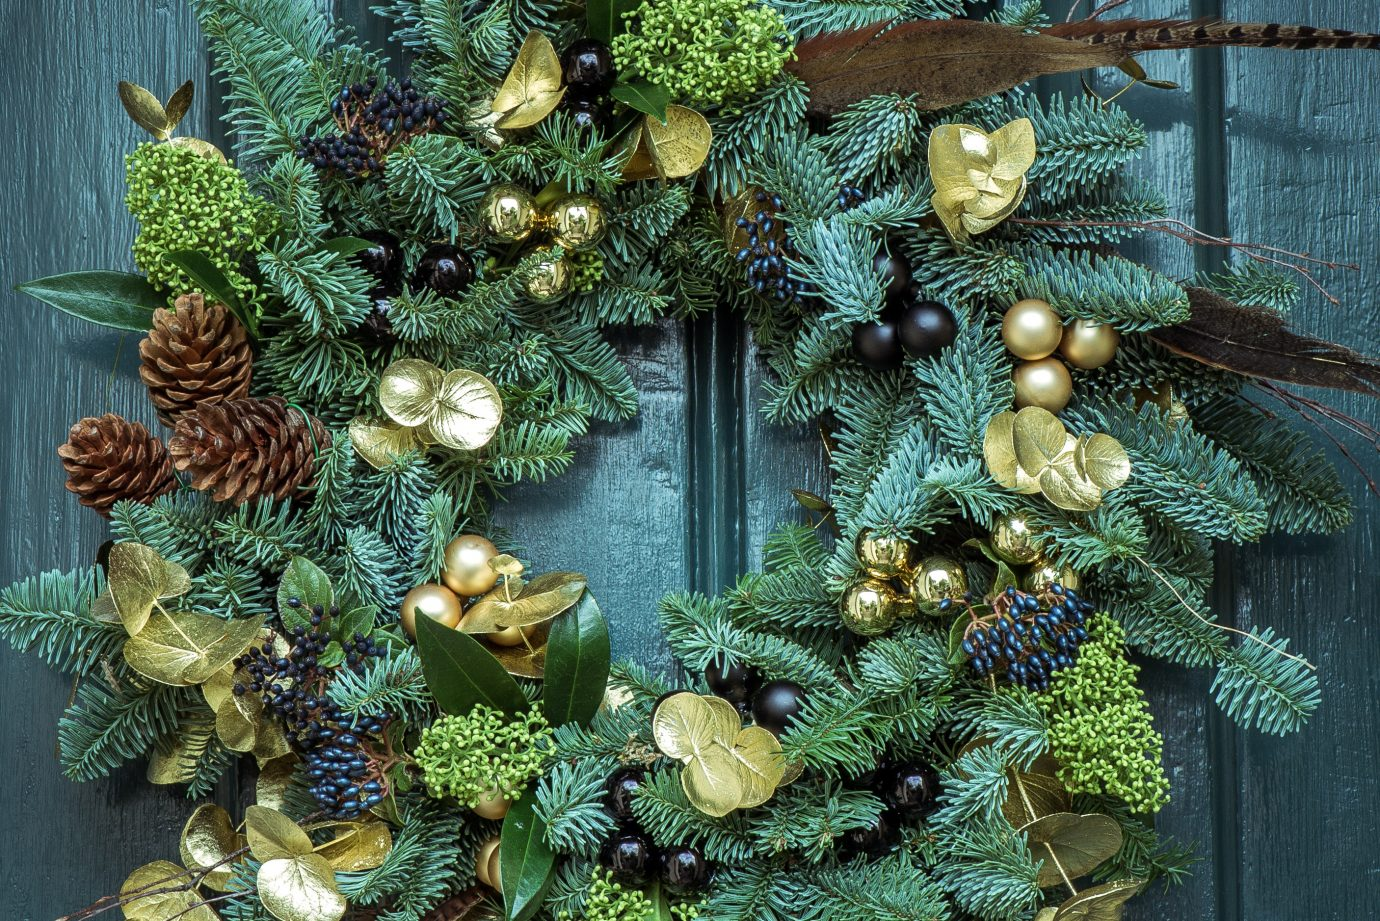 Green and golden Christmas wreath on a green door